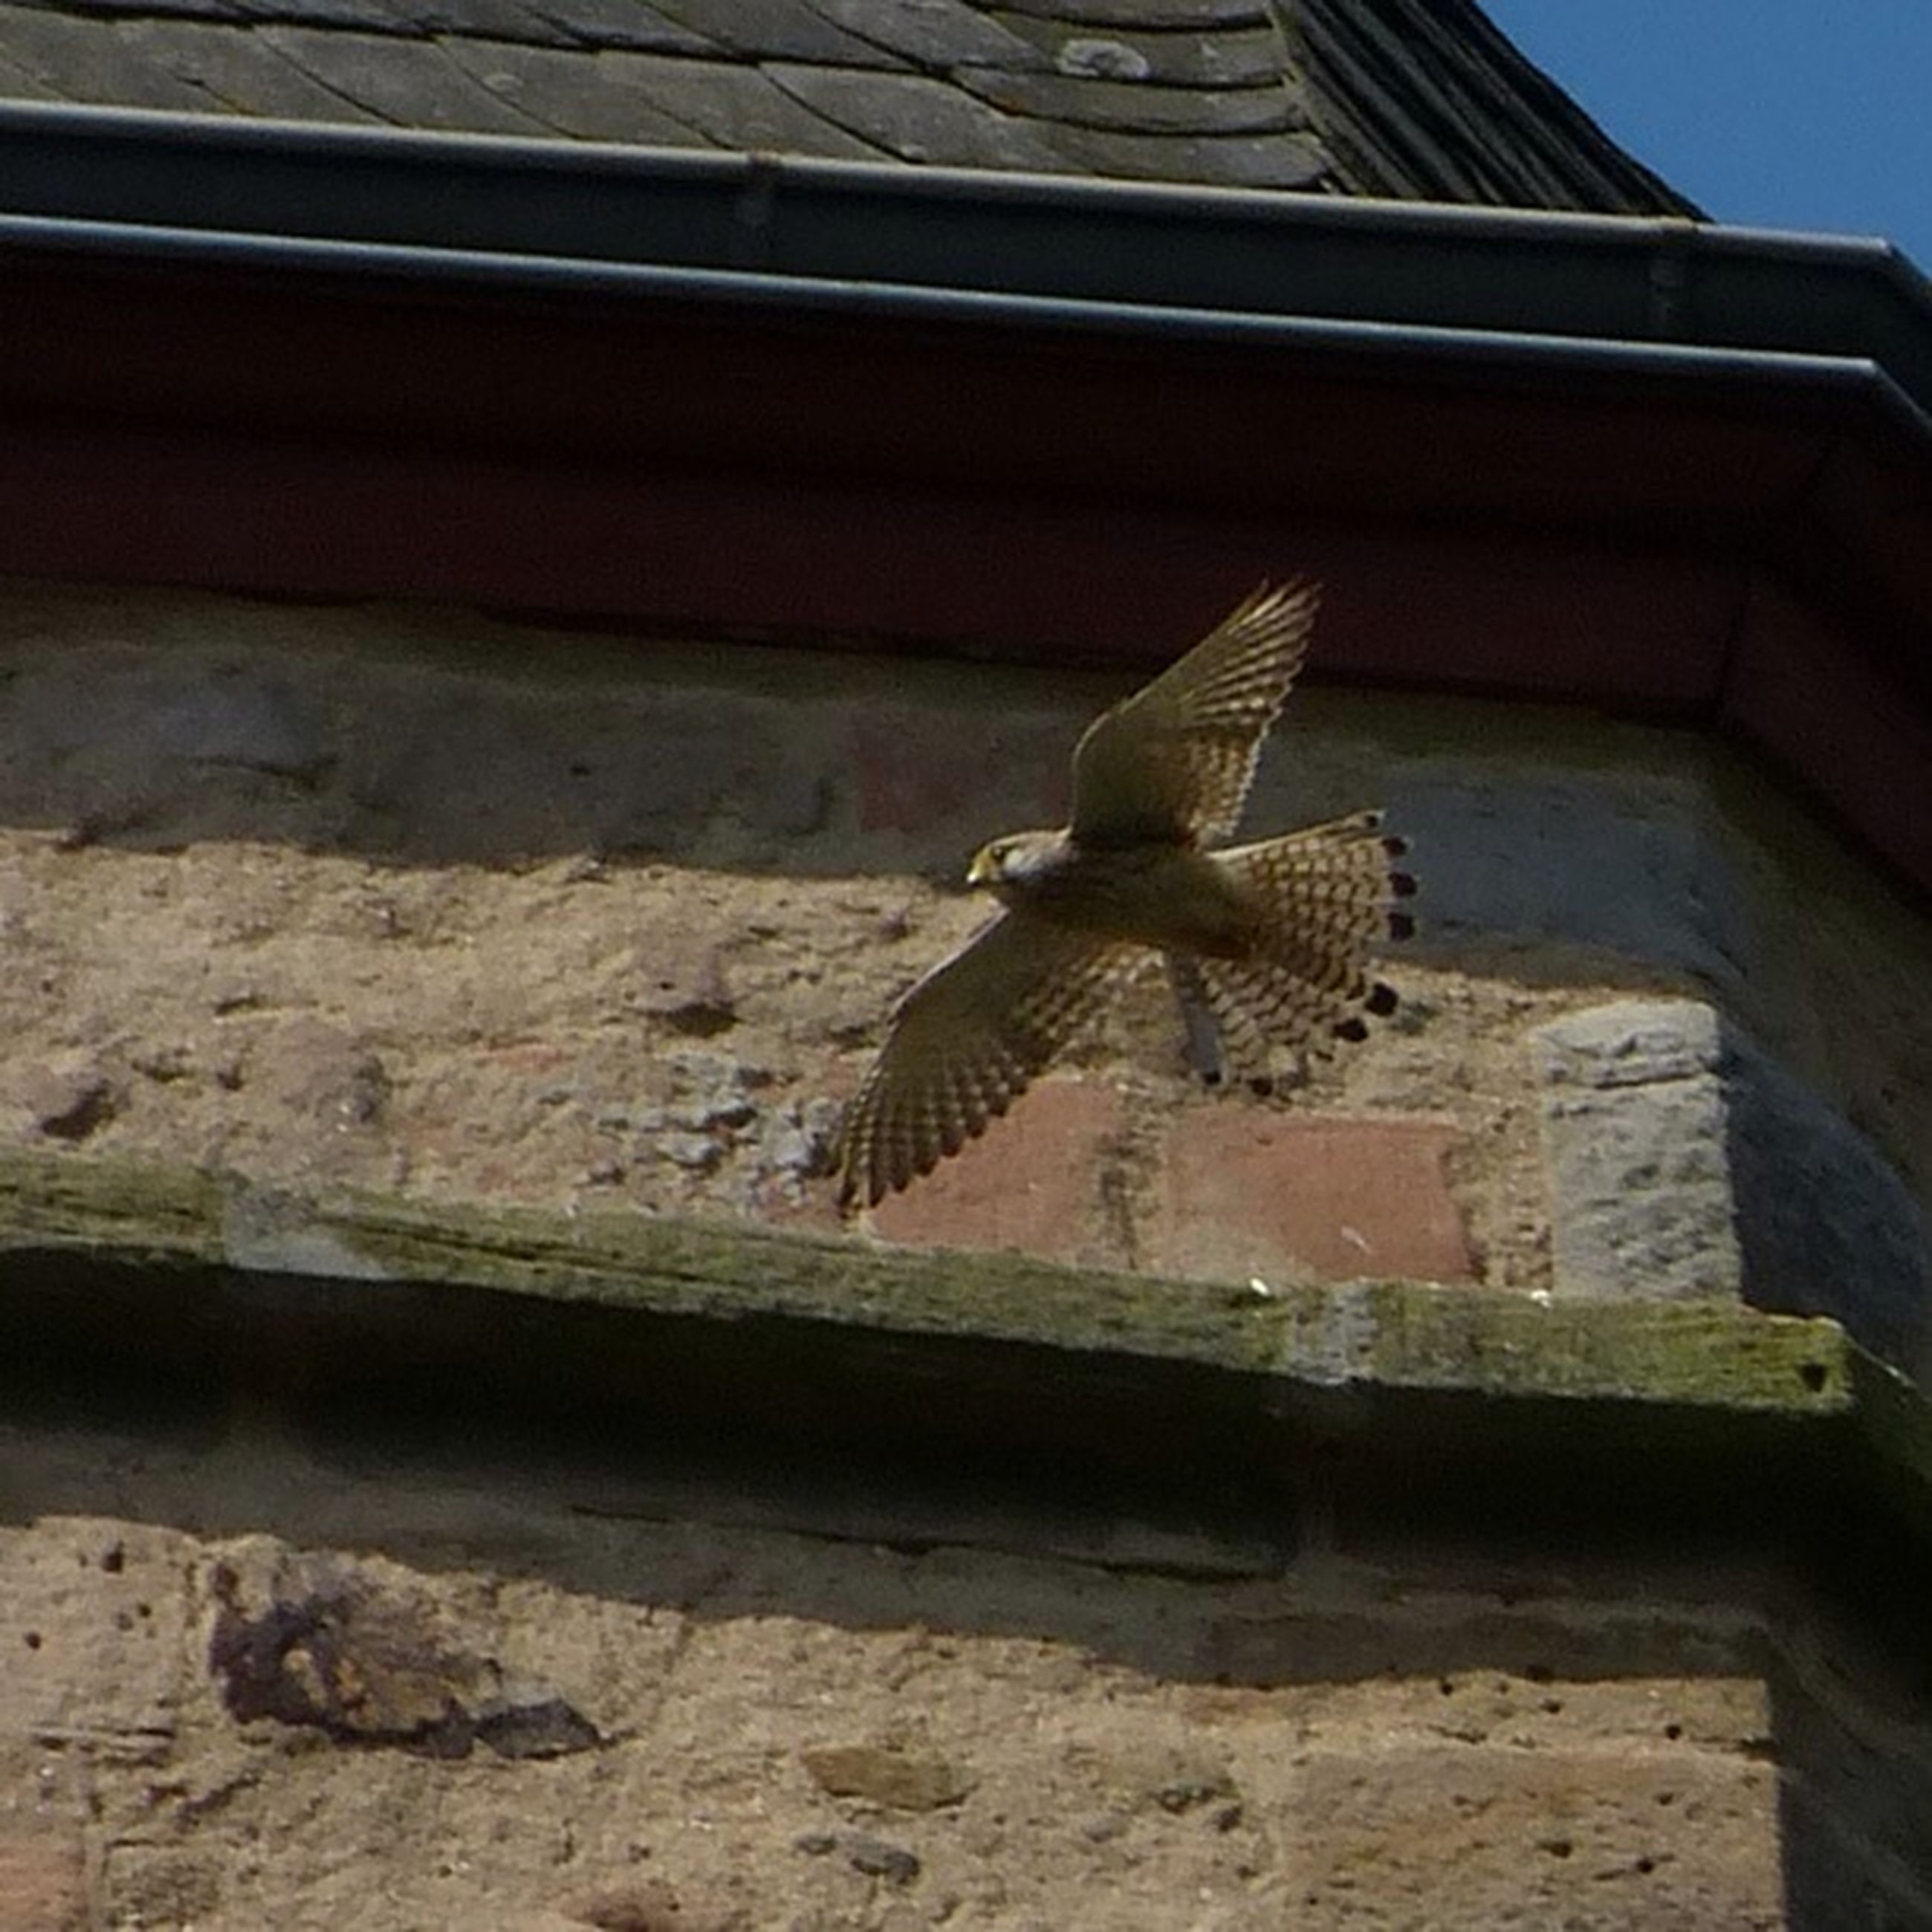 animals in the wild, animal themes, one animal, wildlife, building exterior, built structure, low angle view, architecture, insect, wall - building feature, outdoors, day, bird, perching, no people, brick wall, animal wing, wall, sunlight, full length